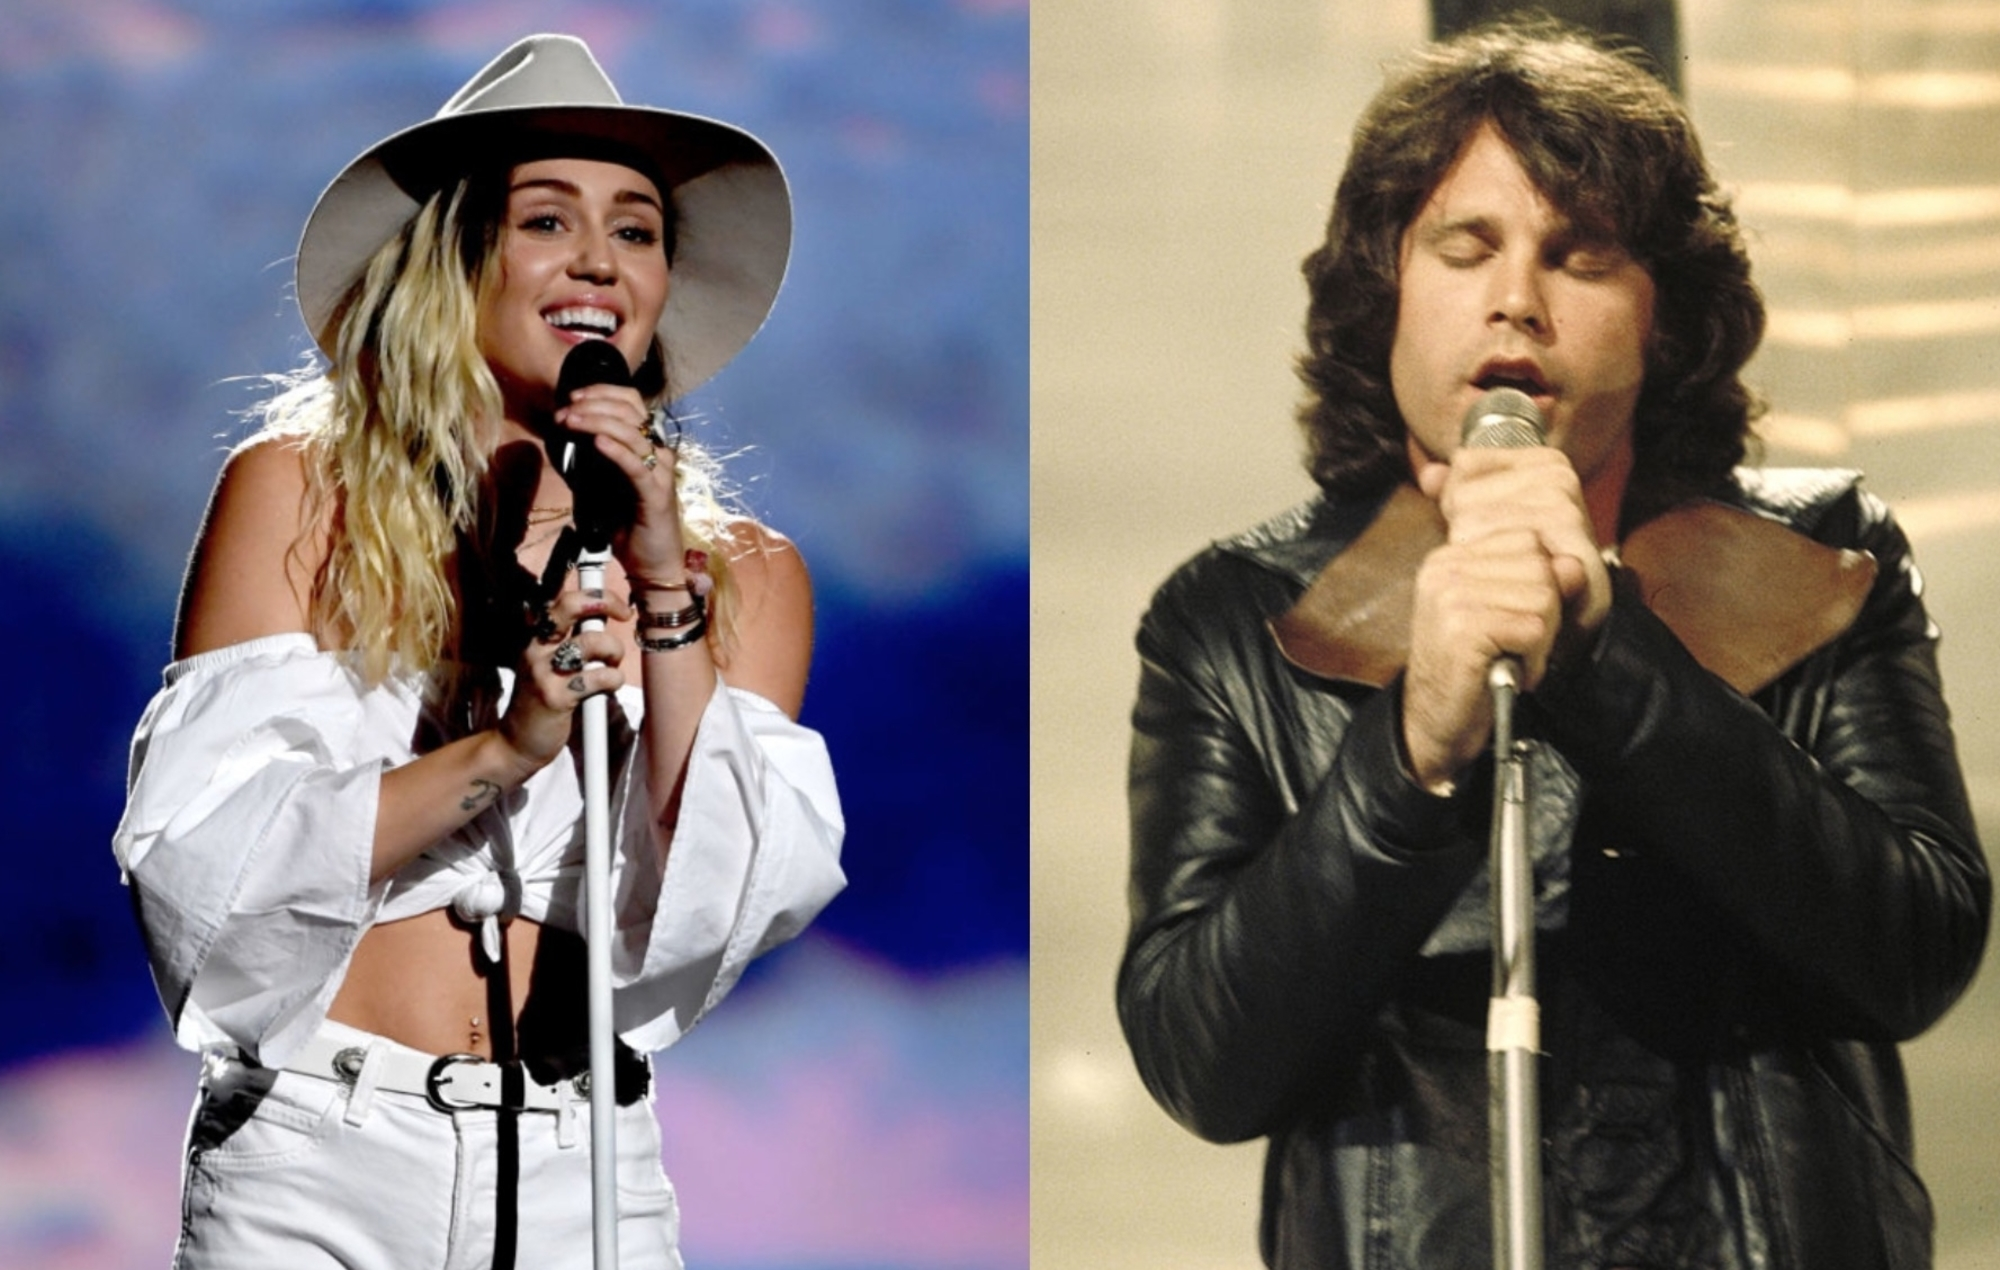 Miley Cyrus covers The Doors' 'Roadhouse Blues' with Robby Krieger